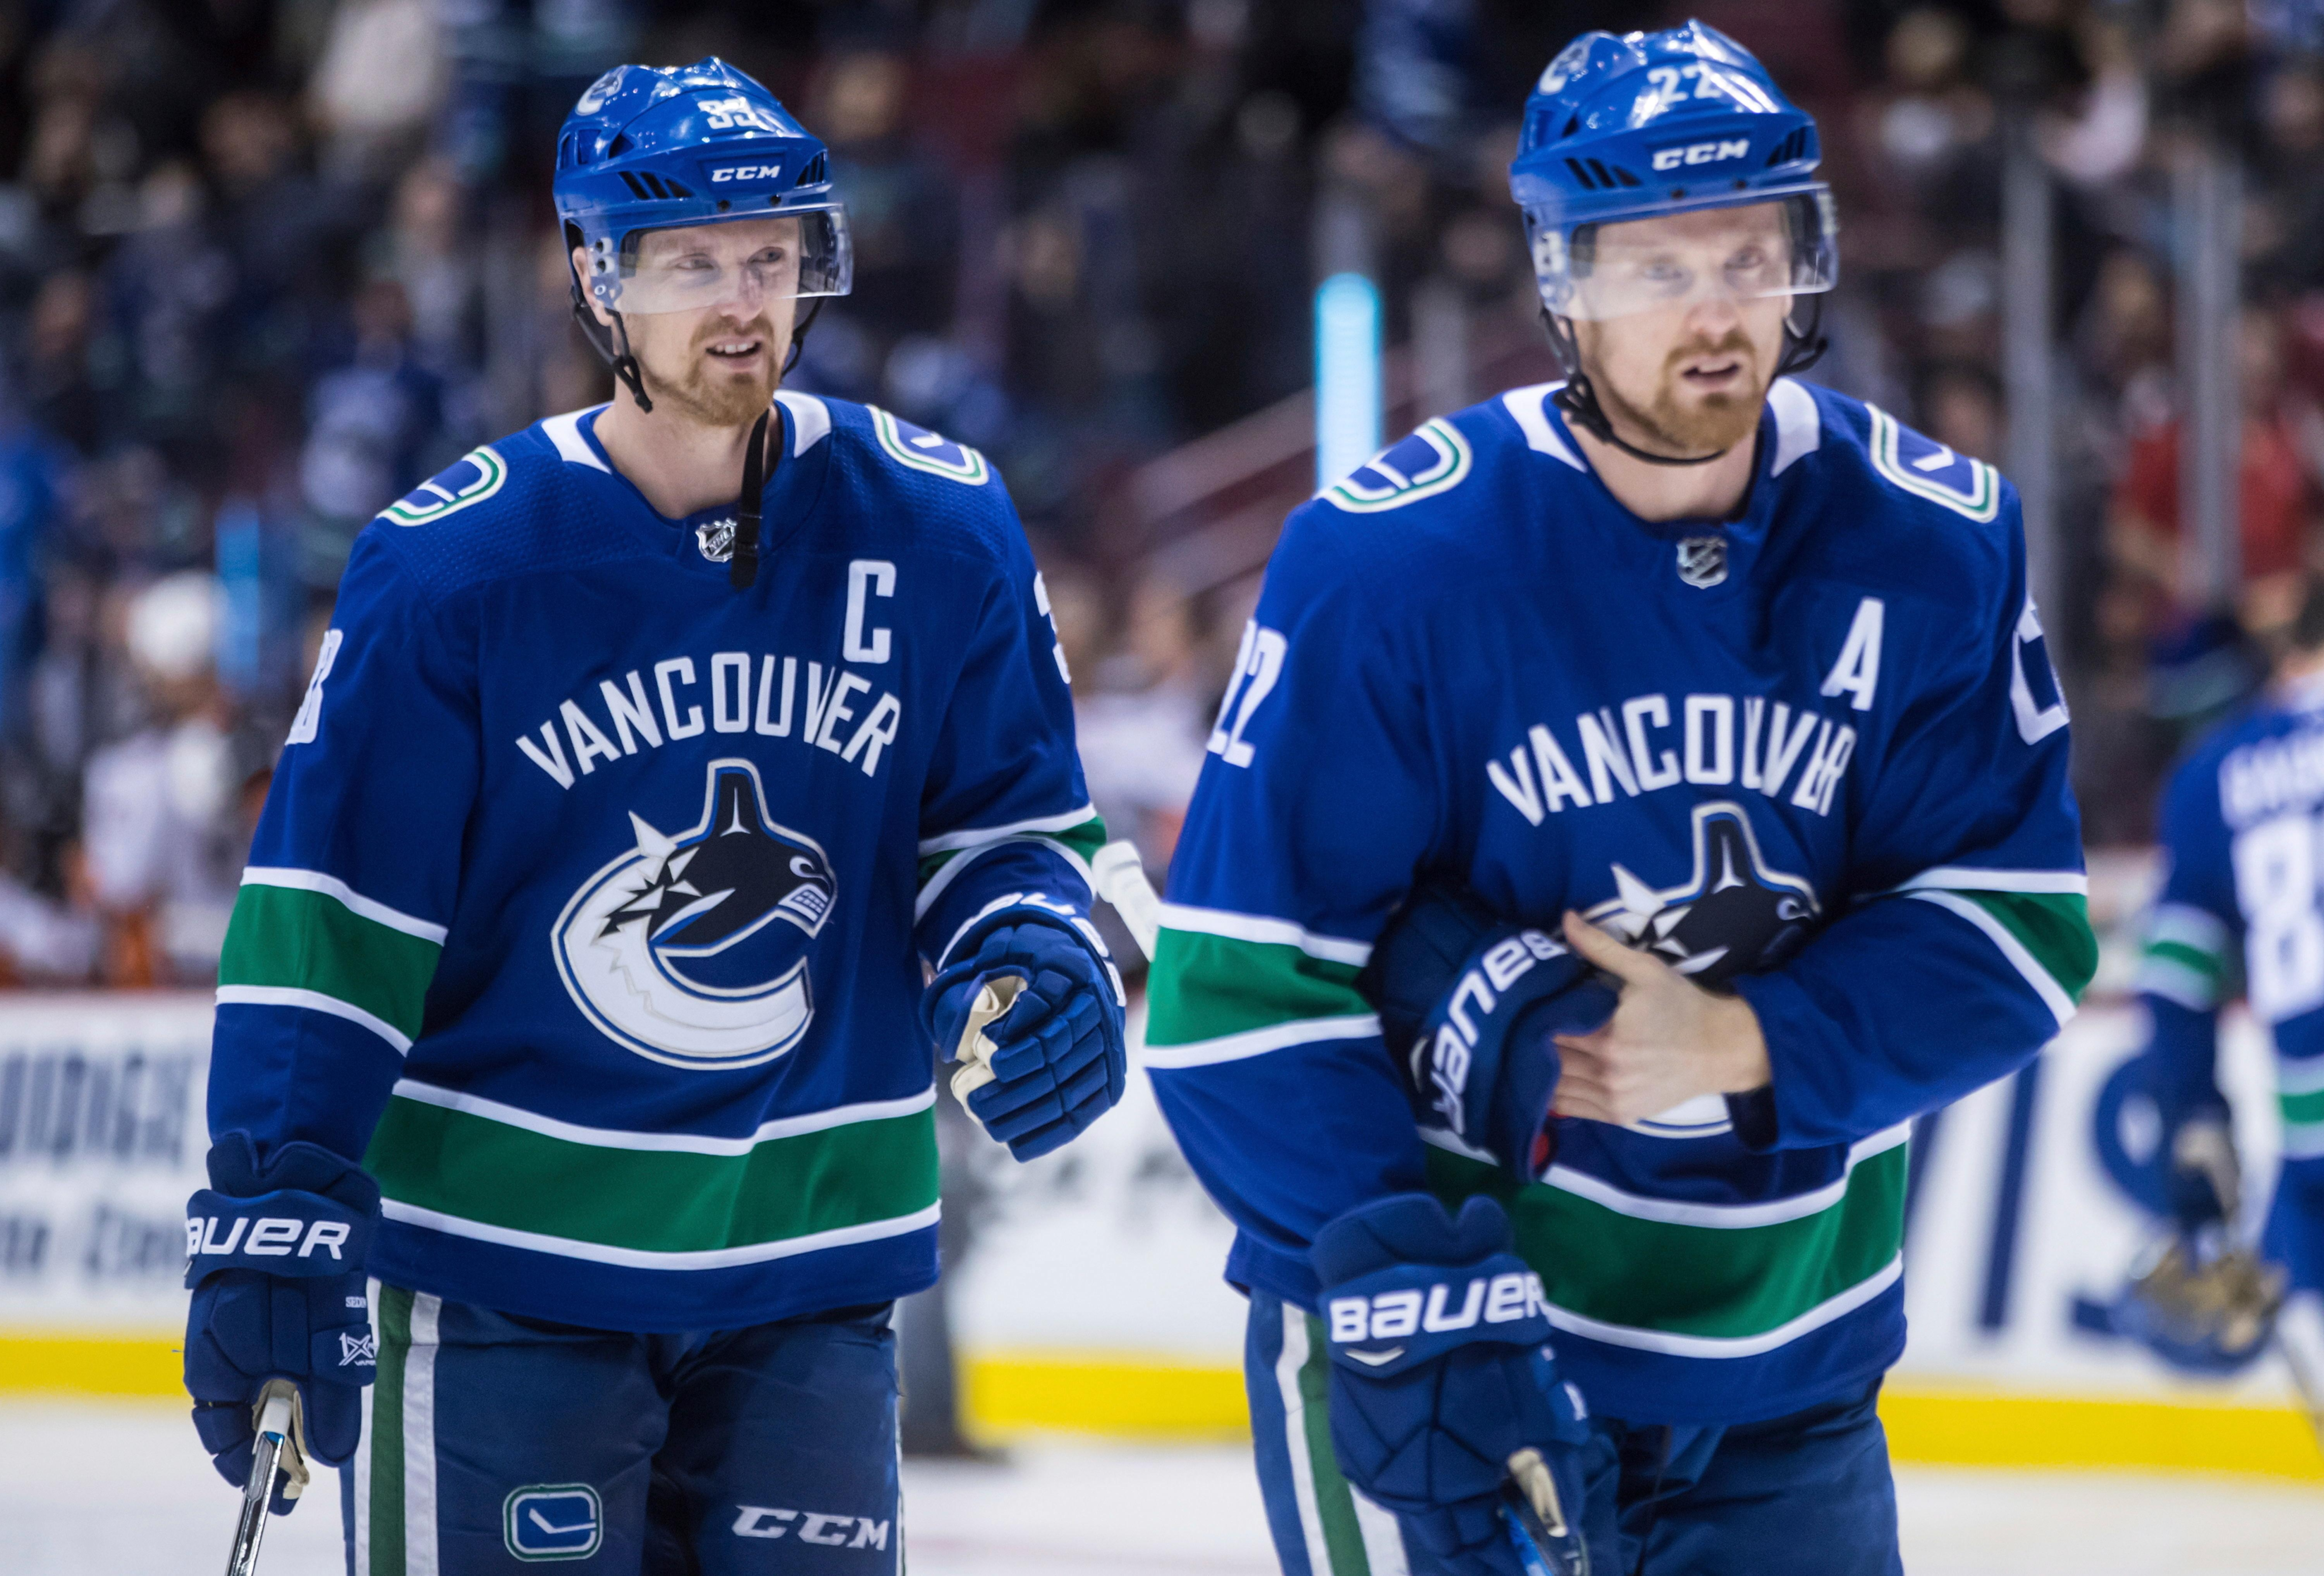 Canucks  Sedin twins to retire after this season f2f1f36c6